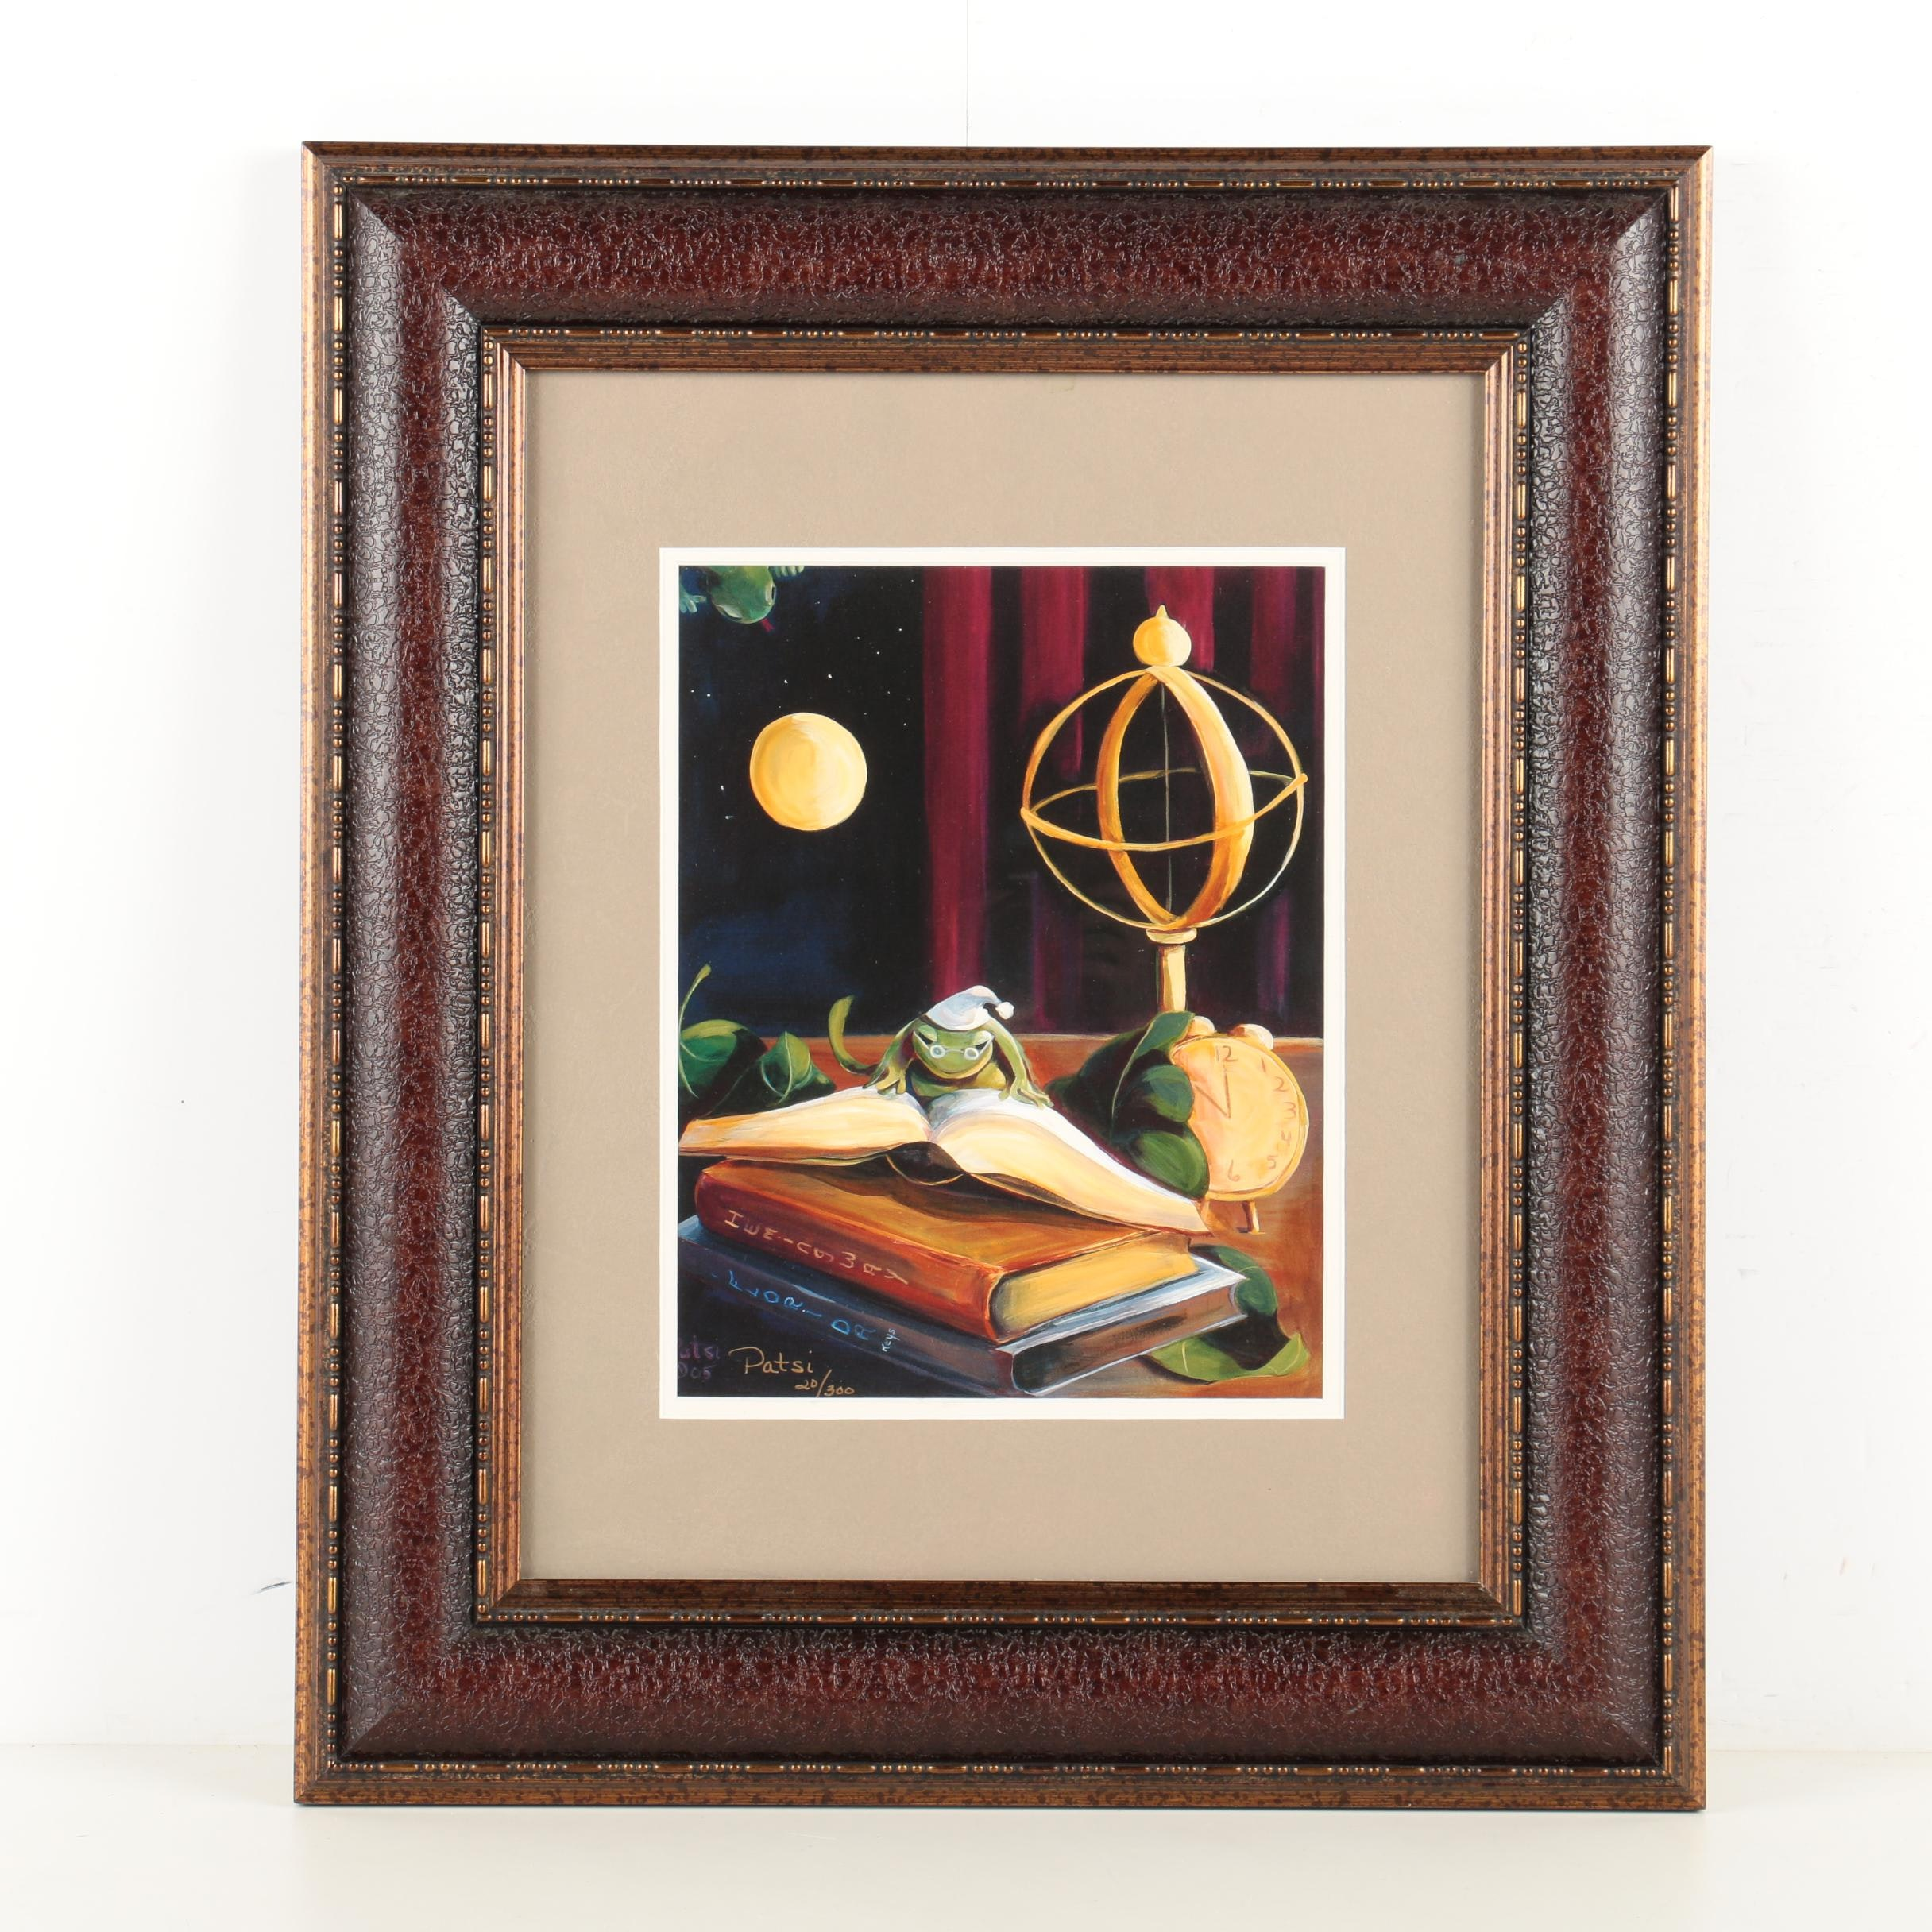 Patsi Limited Edition Print of a Frog Reading a Book